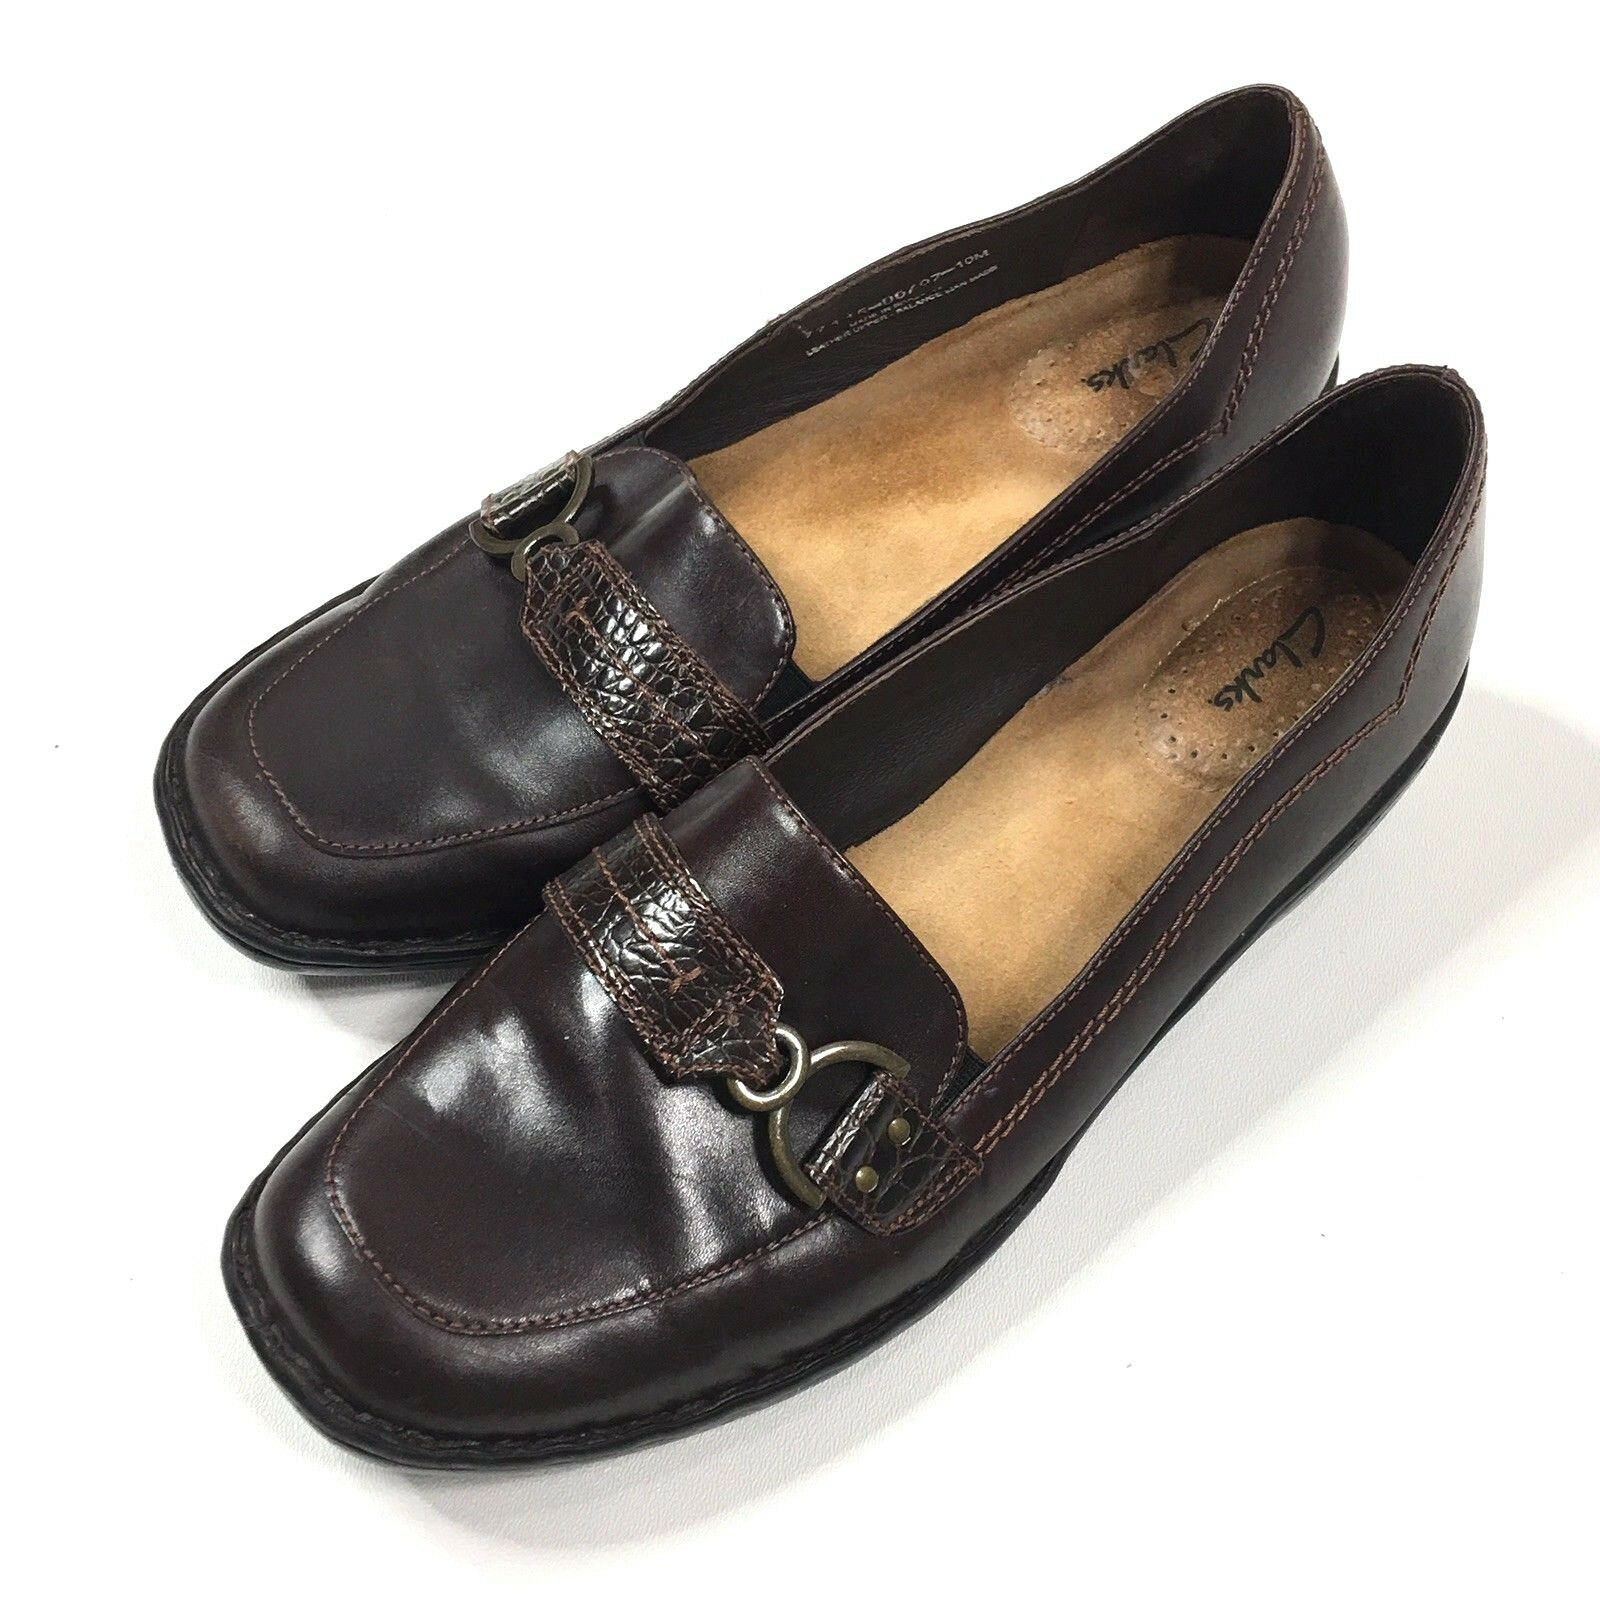 Clarks 77415 Womens Brown Leather Slip On Loafers Made in Brazil Size 10 M